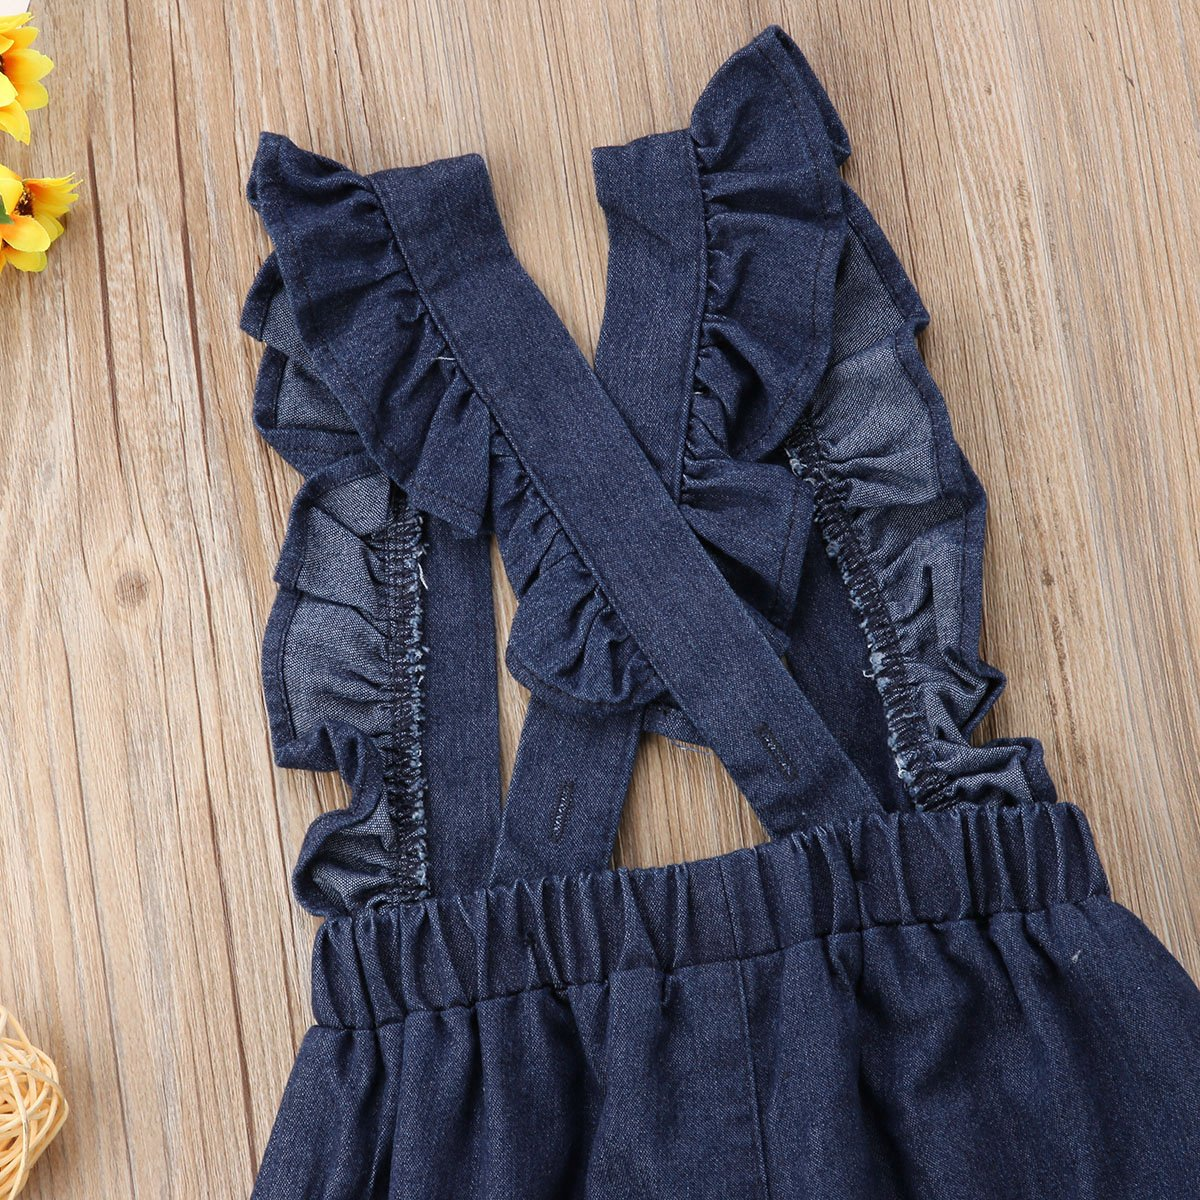 Kids Toddler Baby Girl Ruffle Dots Denim Jumpsuit Suspenders Overalls Outfit